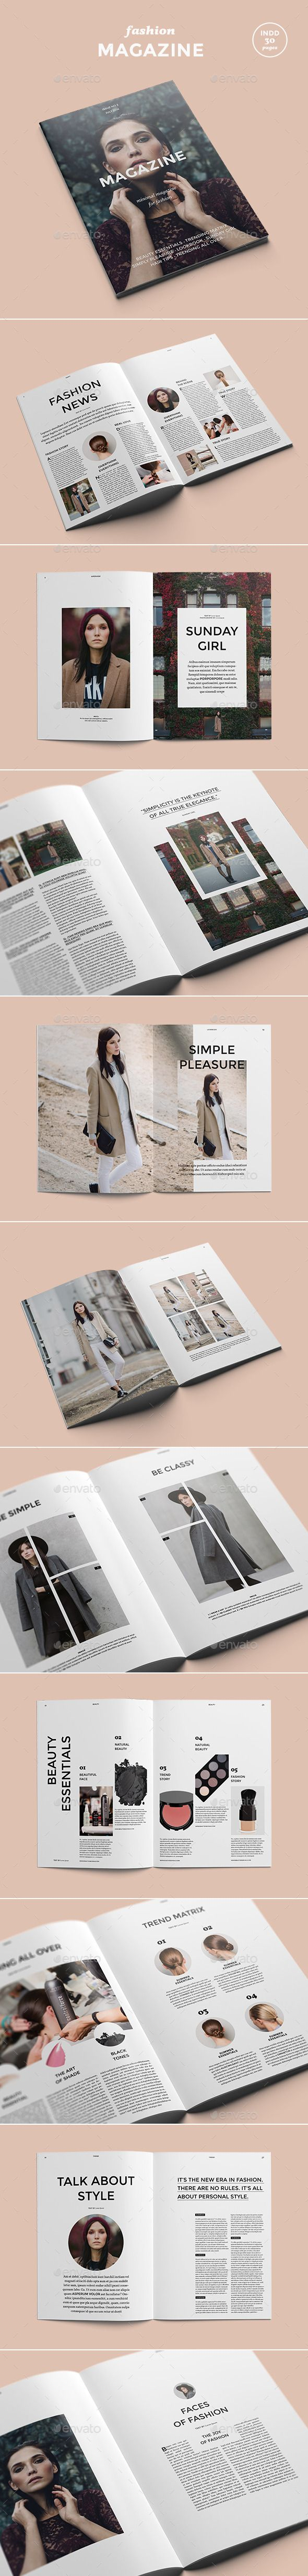 top ideas about editorial spreads the text fashion magazine